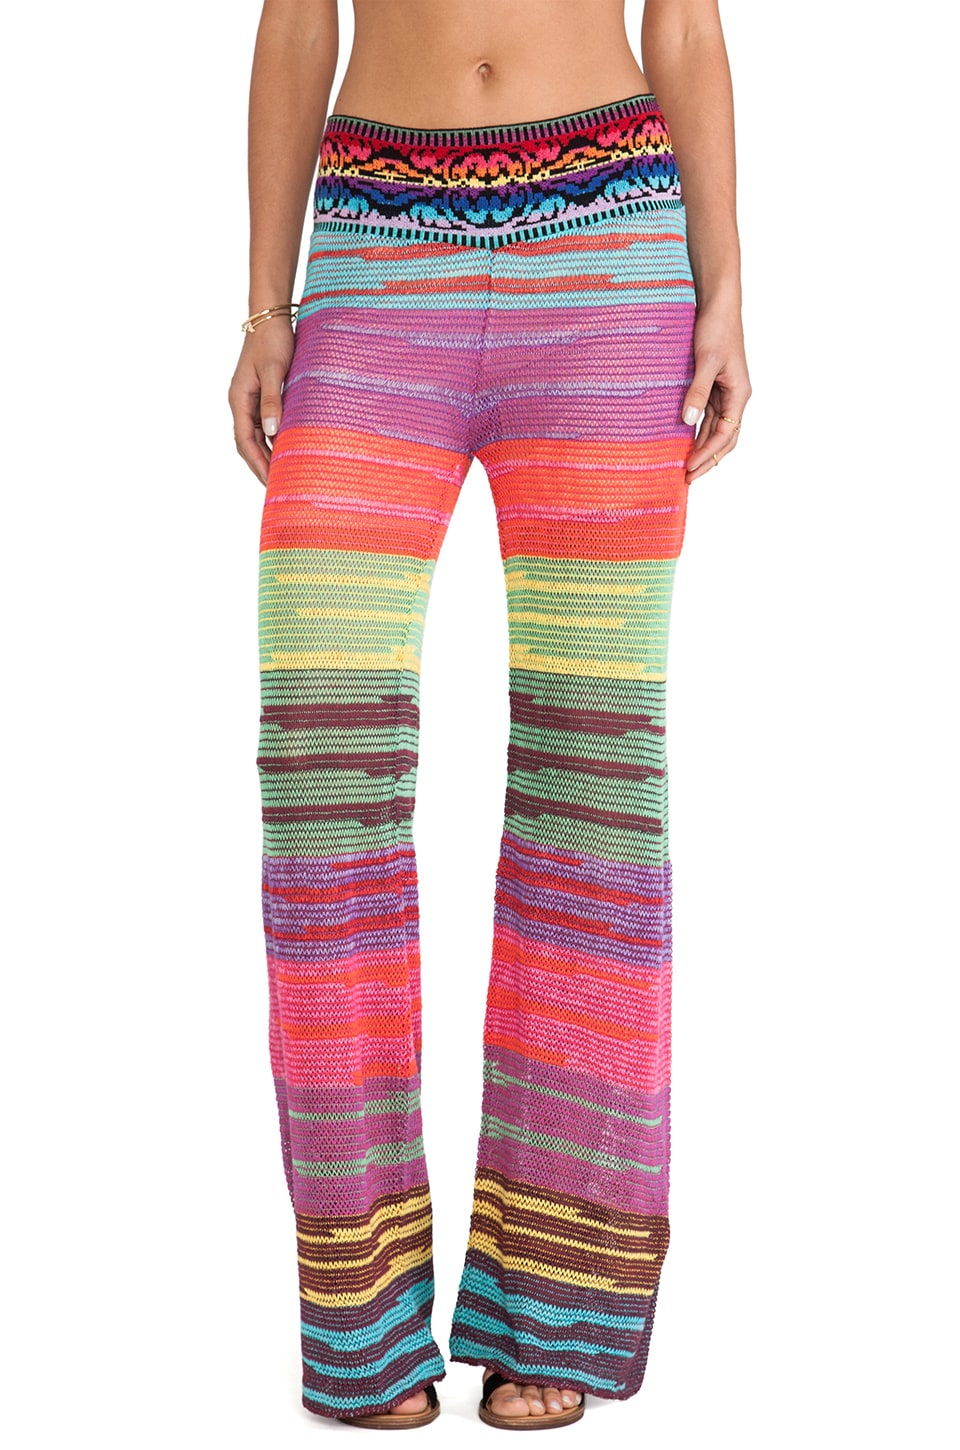 Cecilia Prado Serpentina Wide Leg Pants in Multi